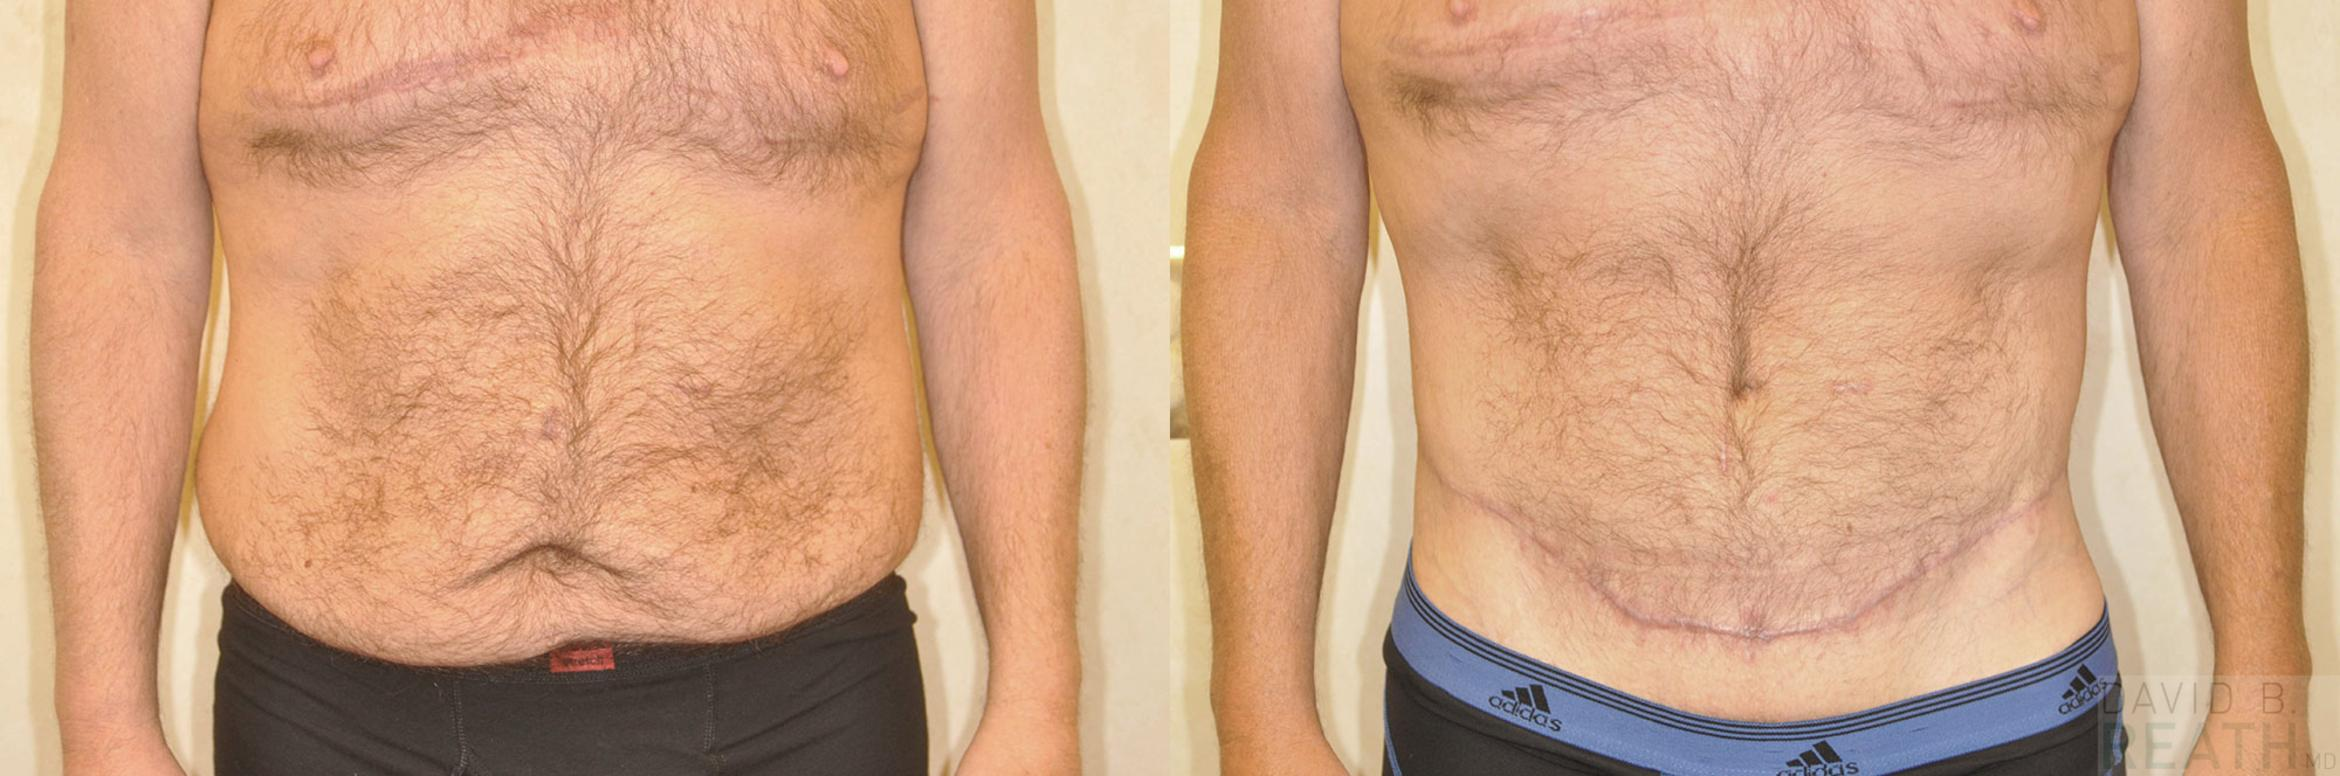 Body Lift for Men Before & After Photo | Knoxville, Tennessee | David B. Reath, MD